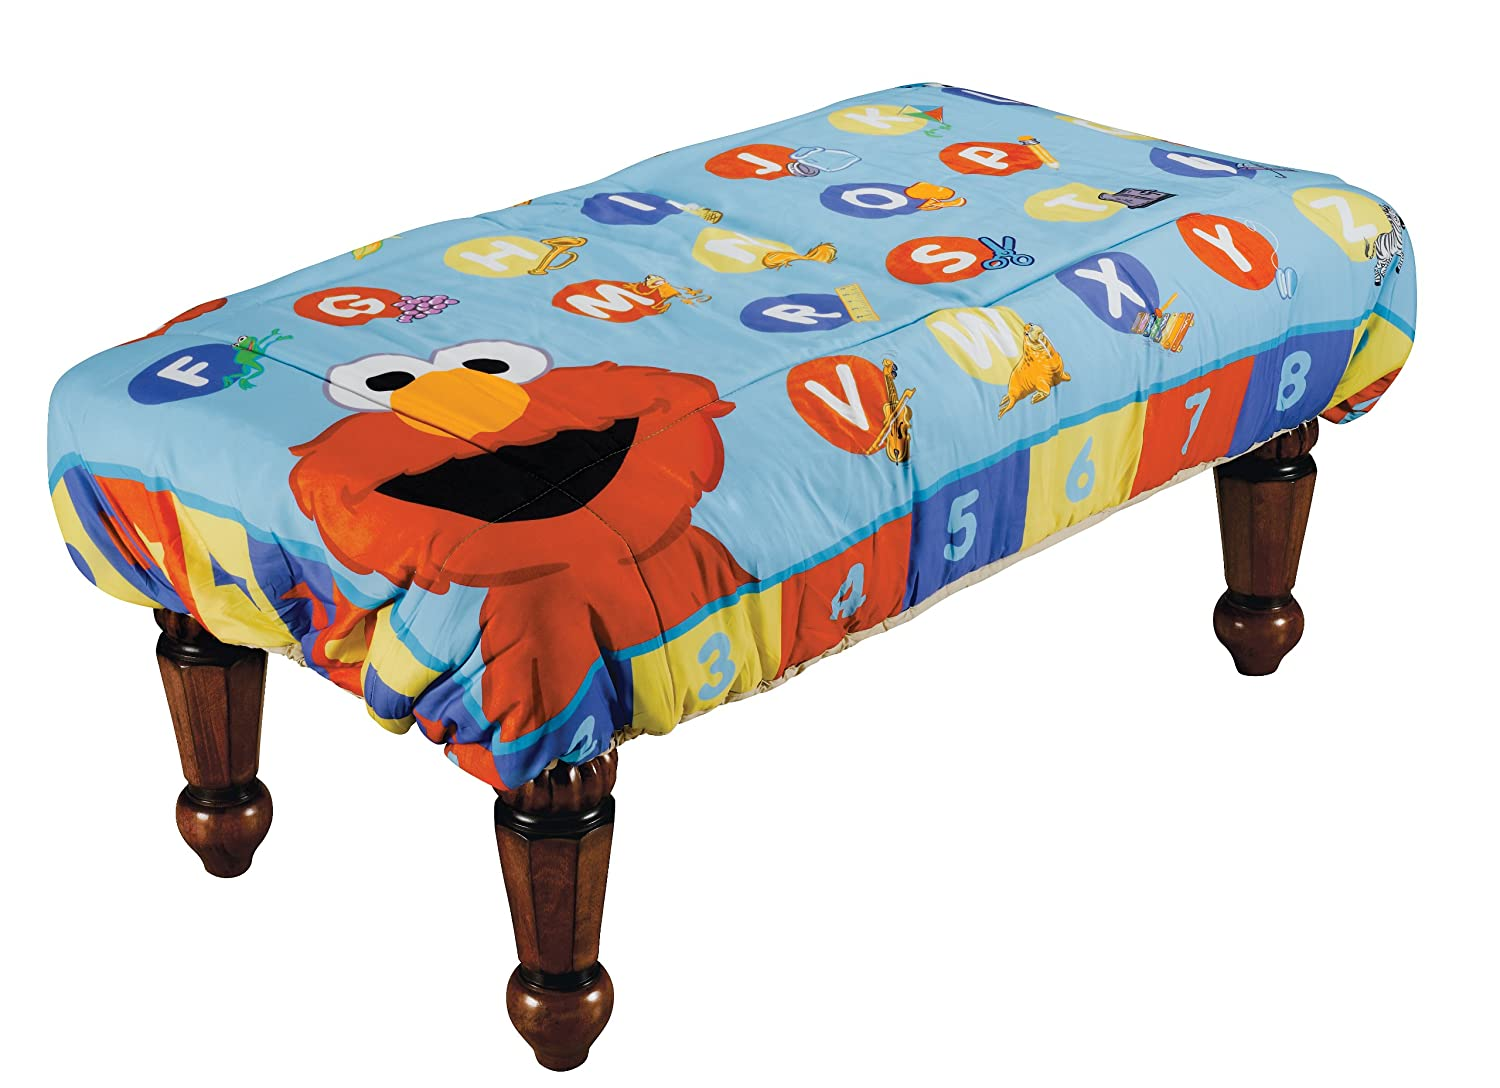 Amazoncom ABC Fun Pads Safety Table Cover Learn with Elmo Large